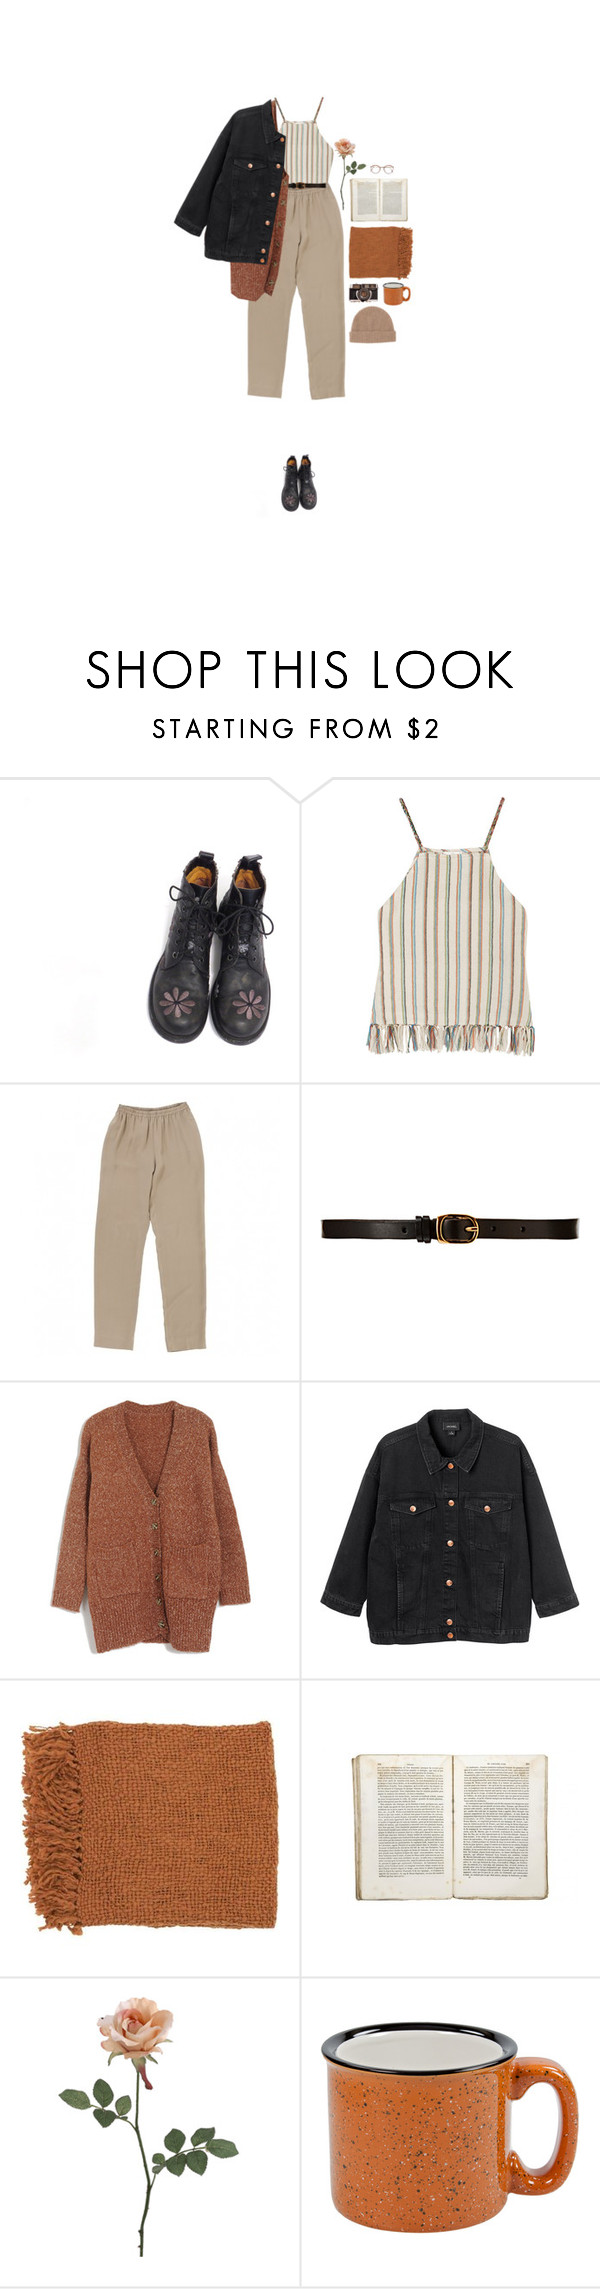 """ikävä meitä"" by hetasdfghjkl ❤ liked on Polyvore featuring Miguelina, CO-OP Barneys New York, Monki, Surya, Jayson Home and Toast"